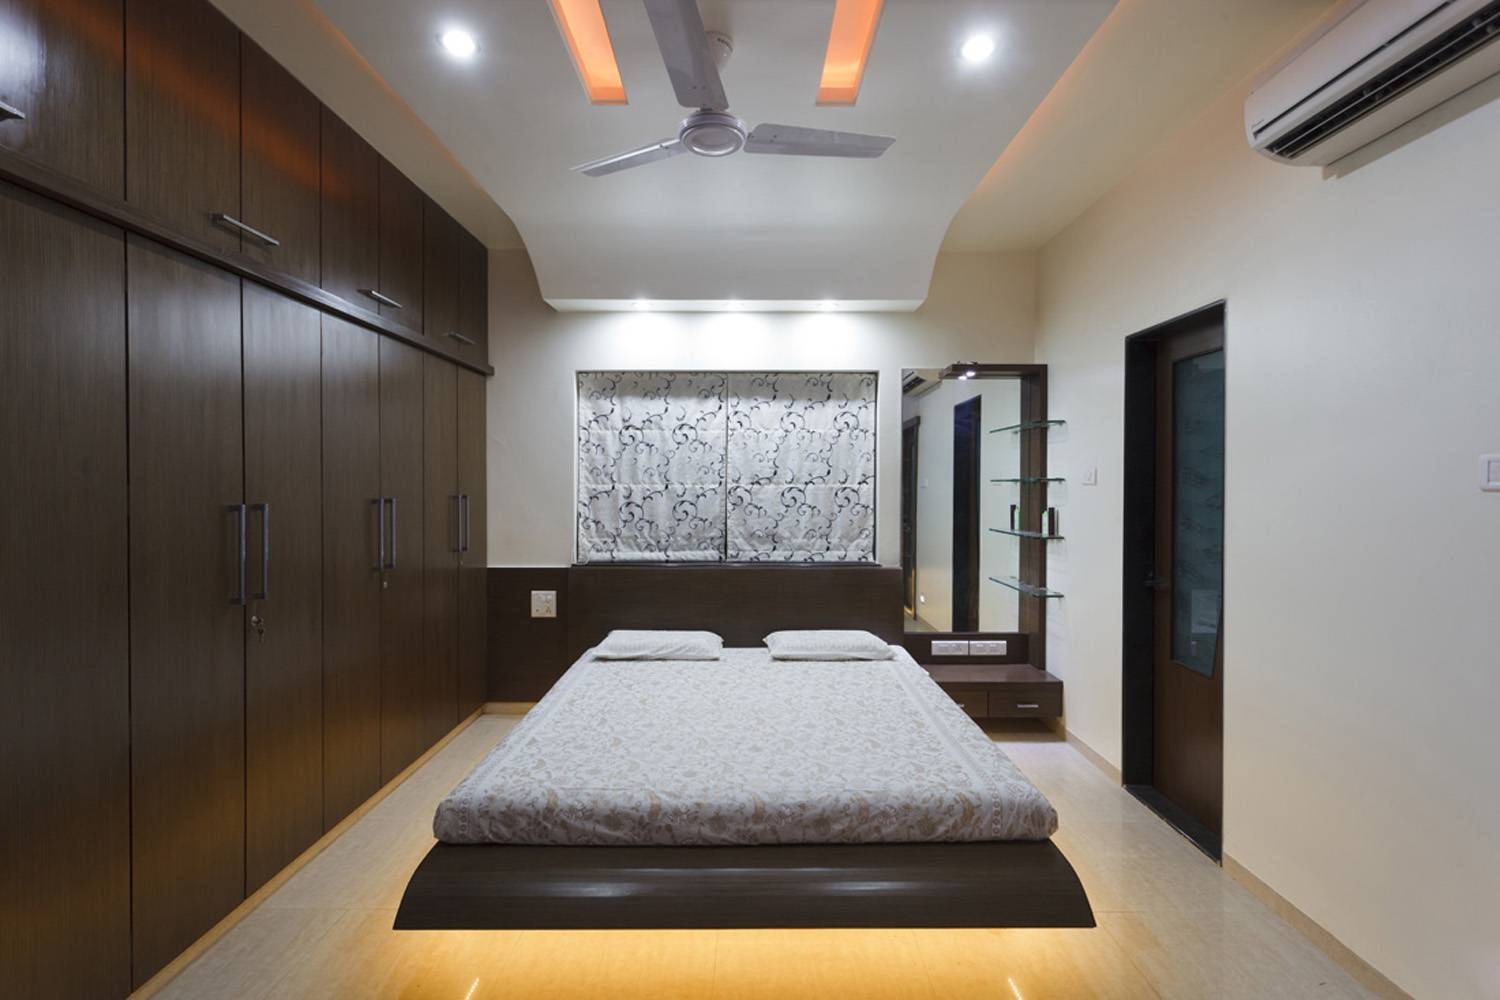 Bed room interior design portfolio leading interior designer pune Room design site